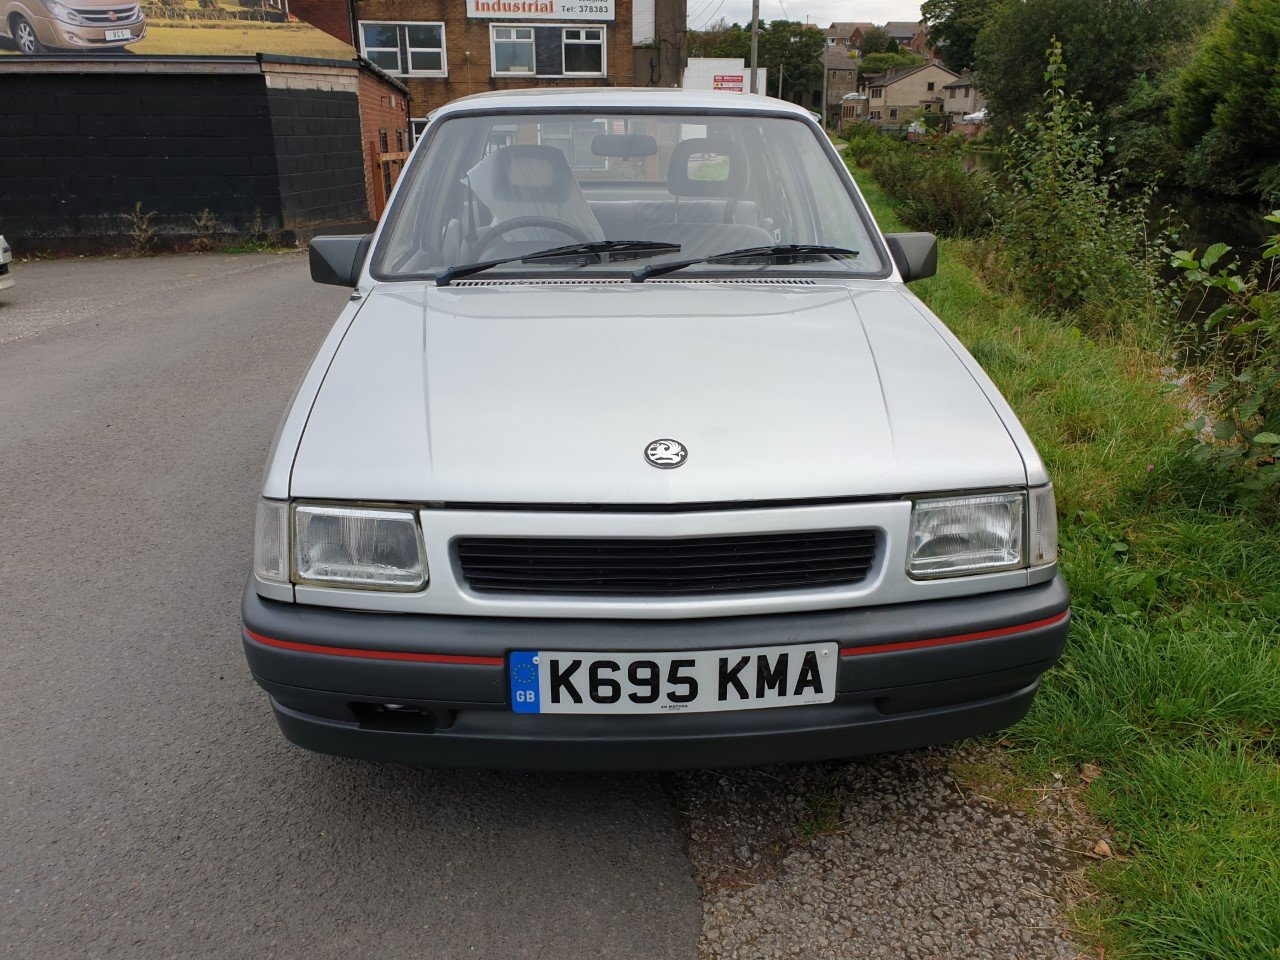 1992 Vauxhall Nova Saloon 4 door 1.2  low mileage  ** 45118 ** For Sale (picture 2 of 6)